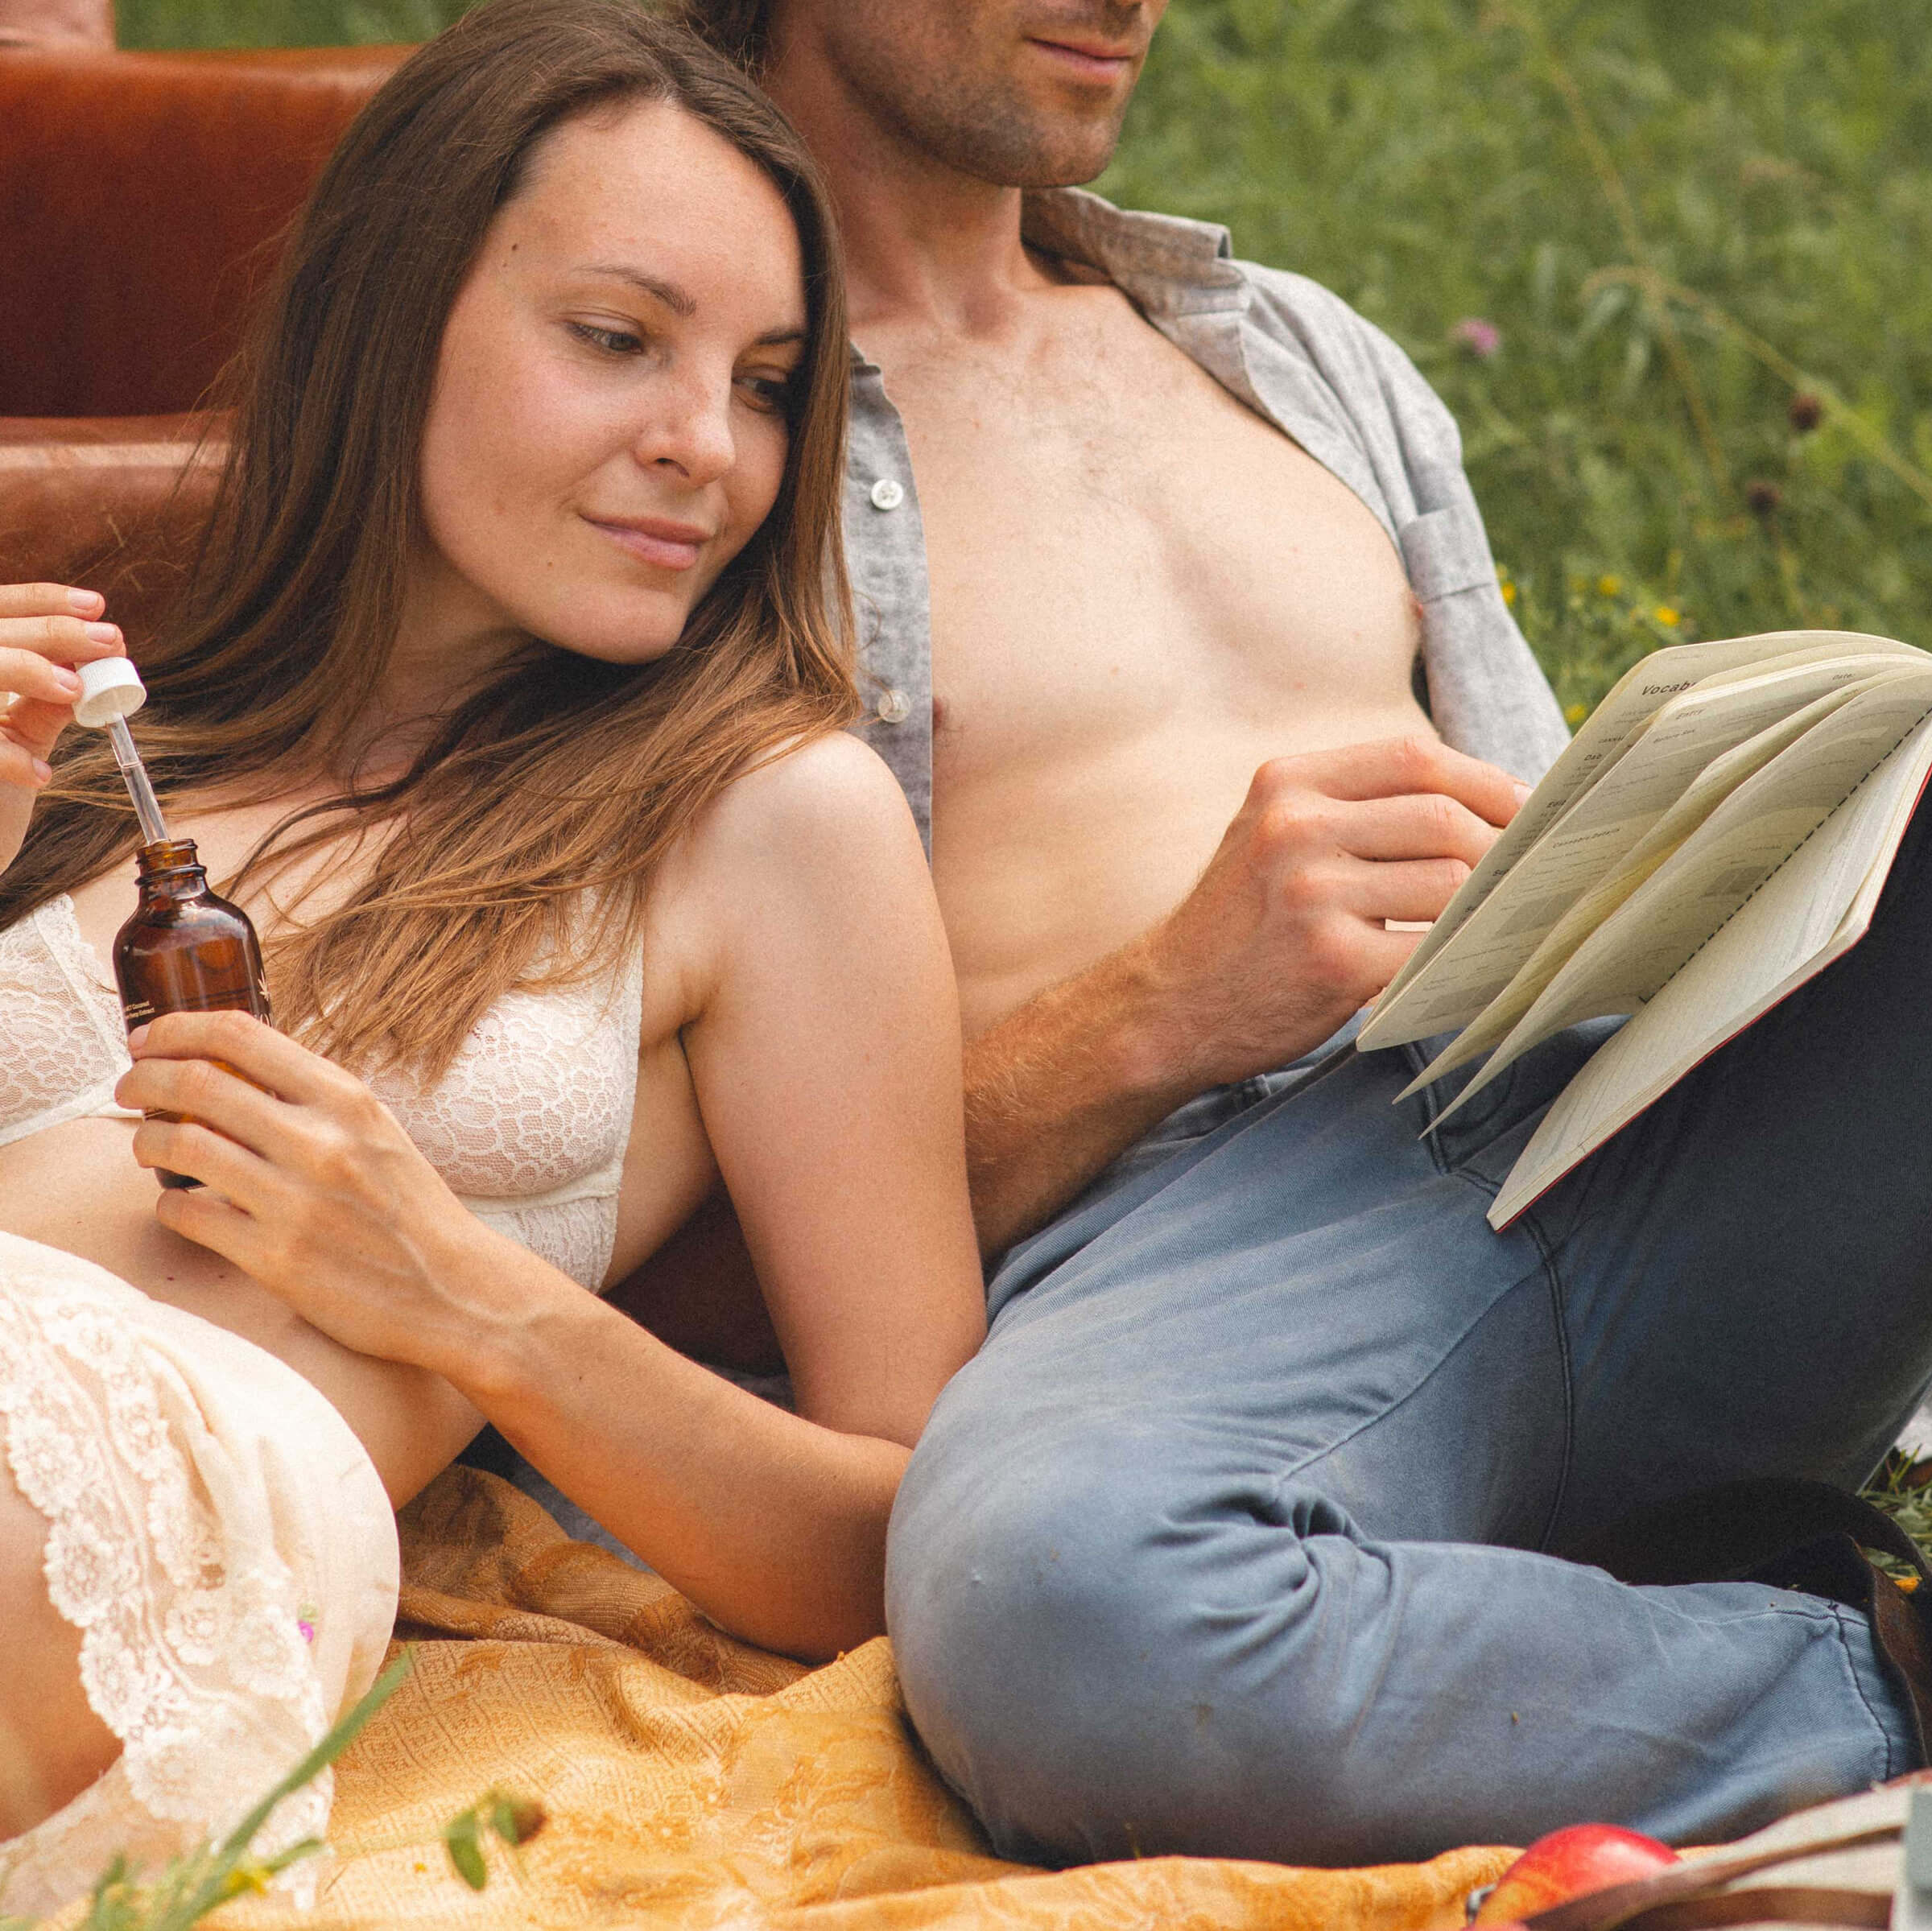 Couple using the Intimacy Journal by Goldleaf